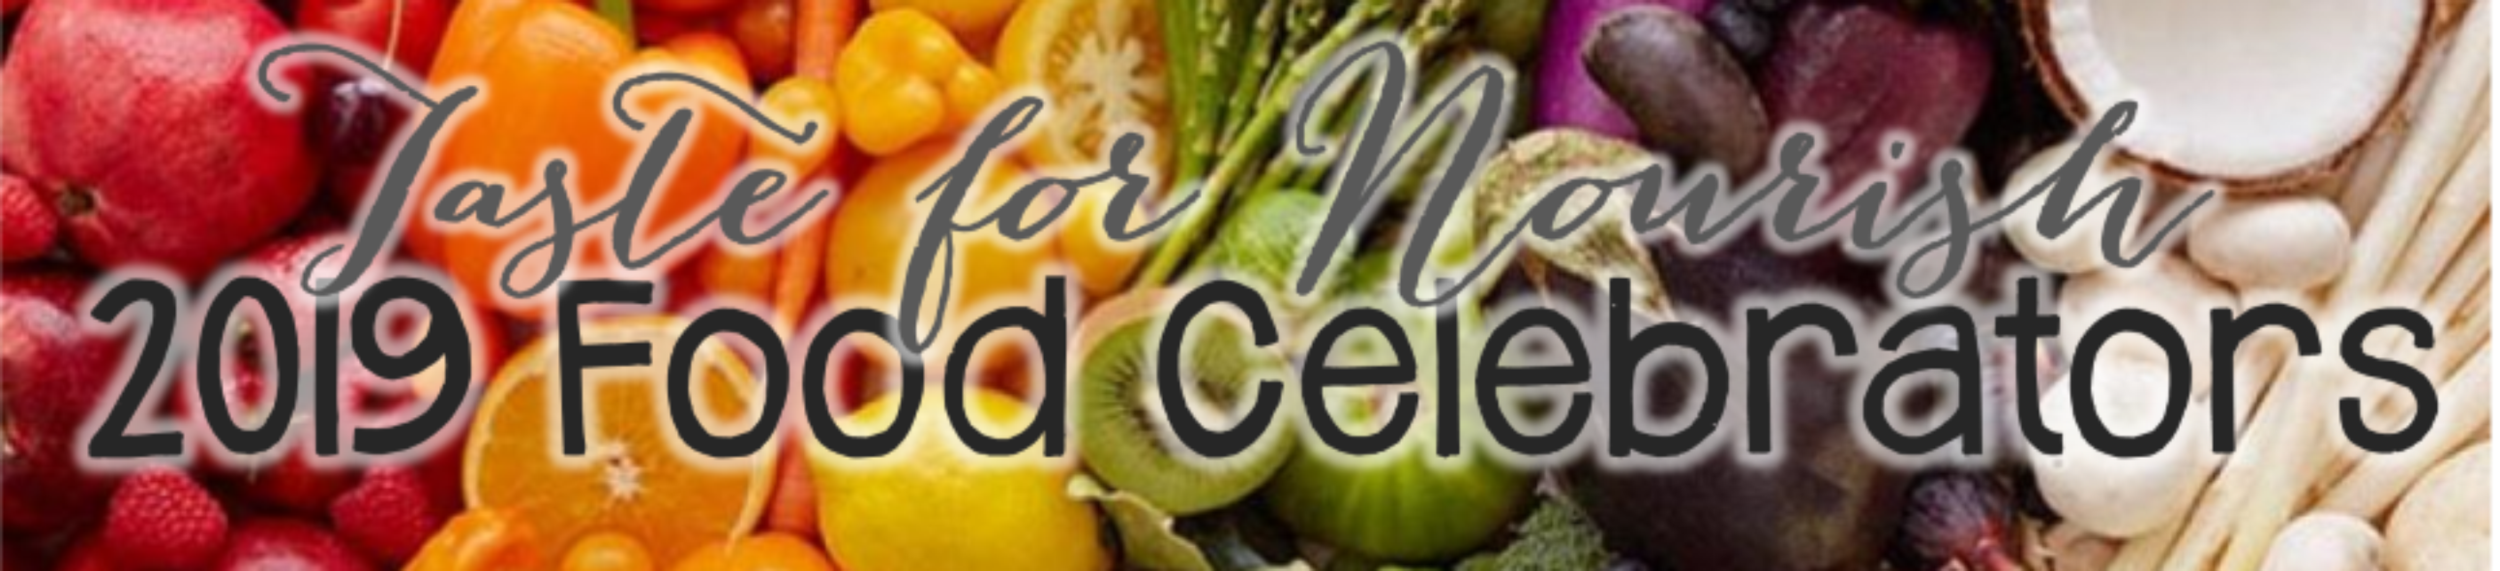 Food Celebrators with Background Small 2019.png